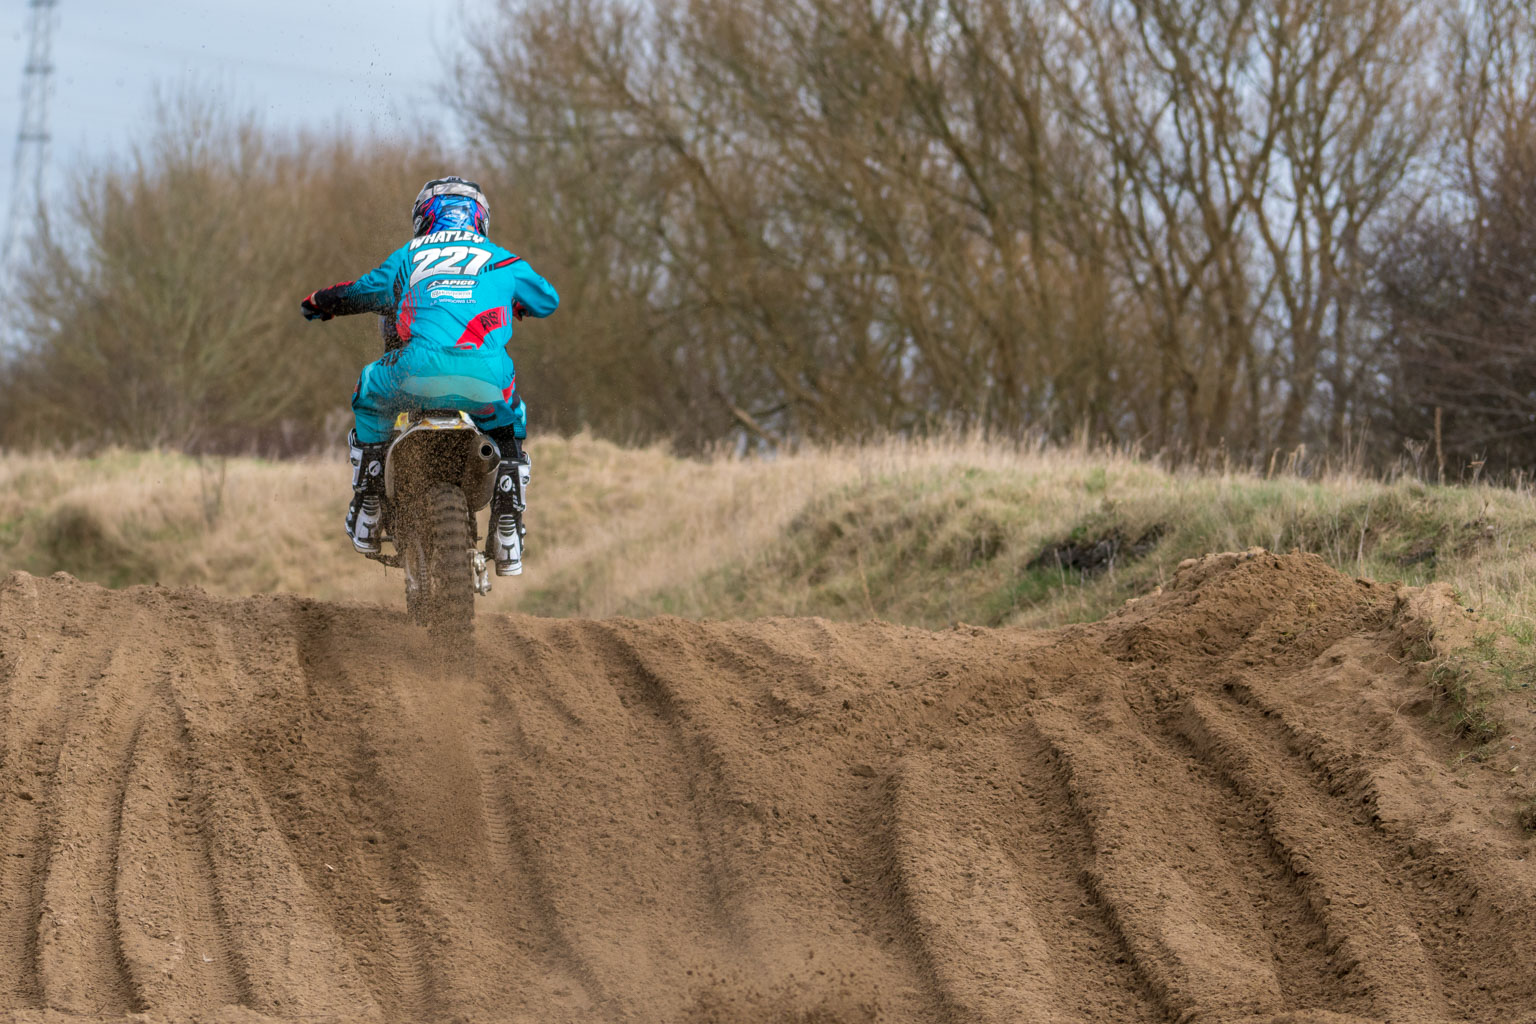 Whatley's been doing lots of sand riding to get ready for the British championship